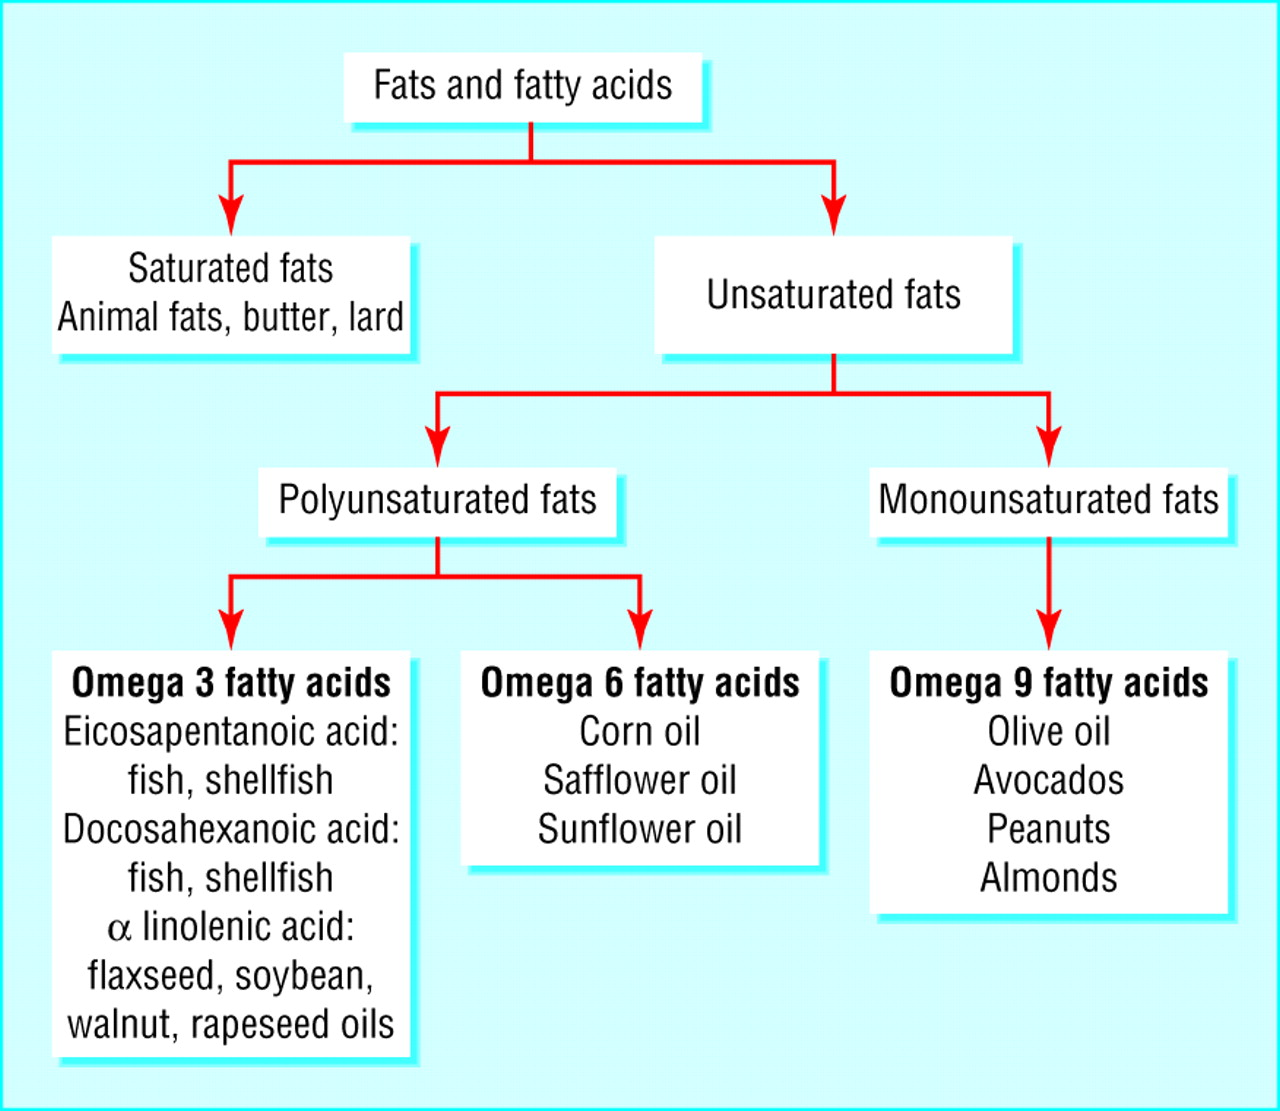 Omega 3 fatty acids and cardiovascular disease—fishing for a natural treatment | The BMJ